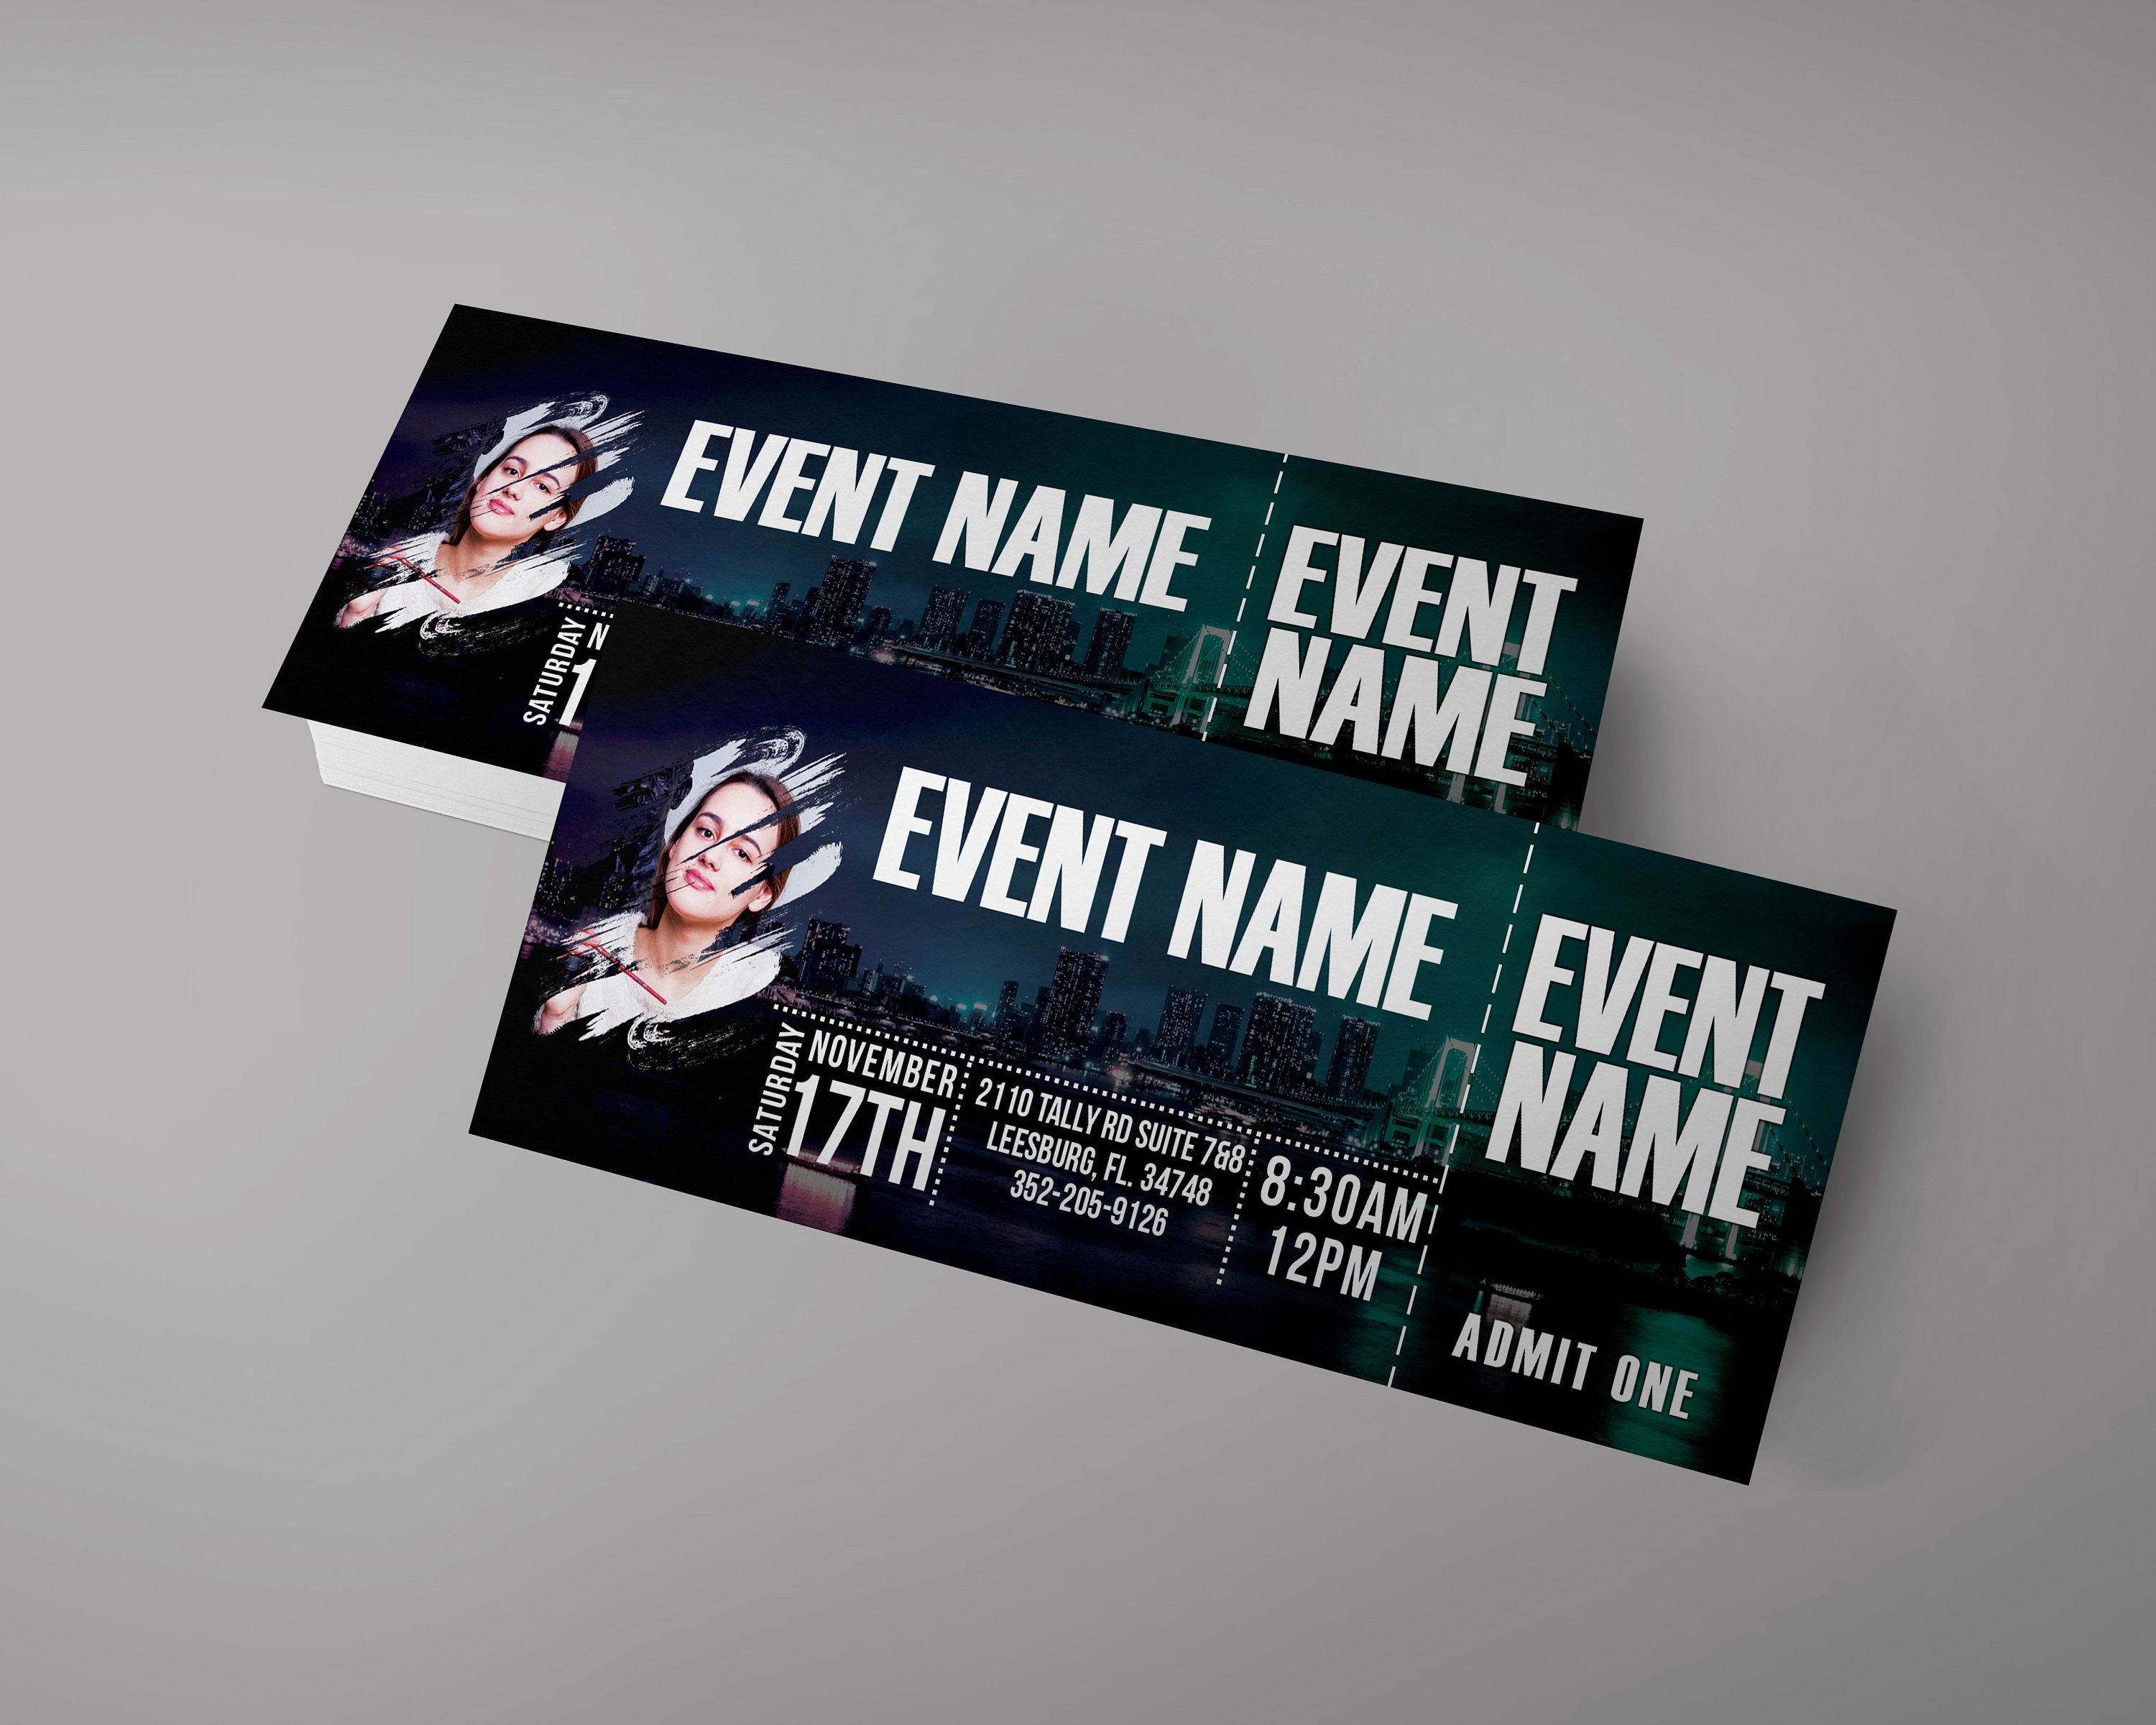 Party Ticket Design Dance Ticket Stand Up Ticket Invitation Tickets Your Event Ticket Concert Ticket Design Printable Ticket Event Tickets Design Ticket Design Party Tickets